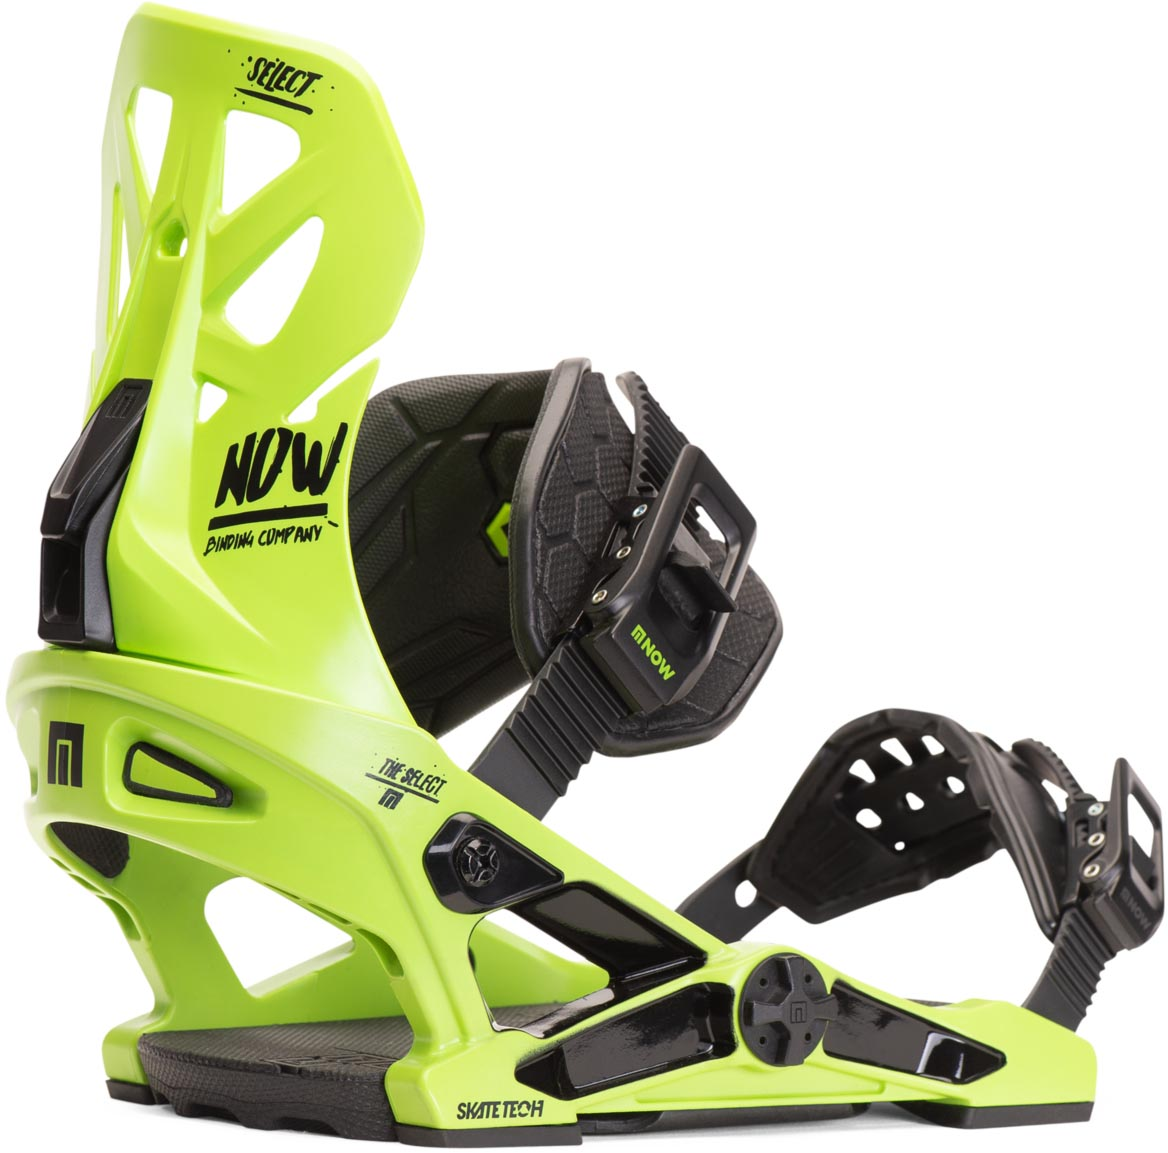 NOW Select Pro 2019- 2020 Snowboard Binding Review